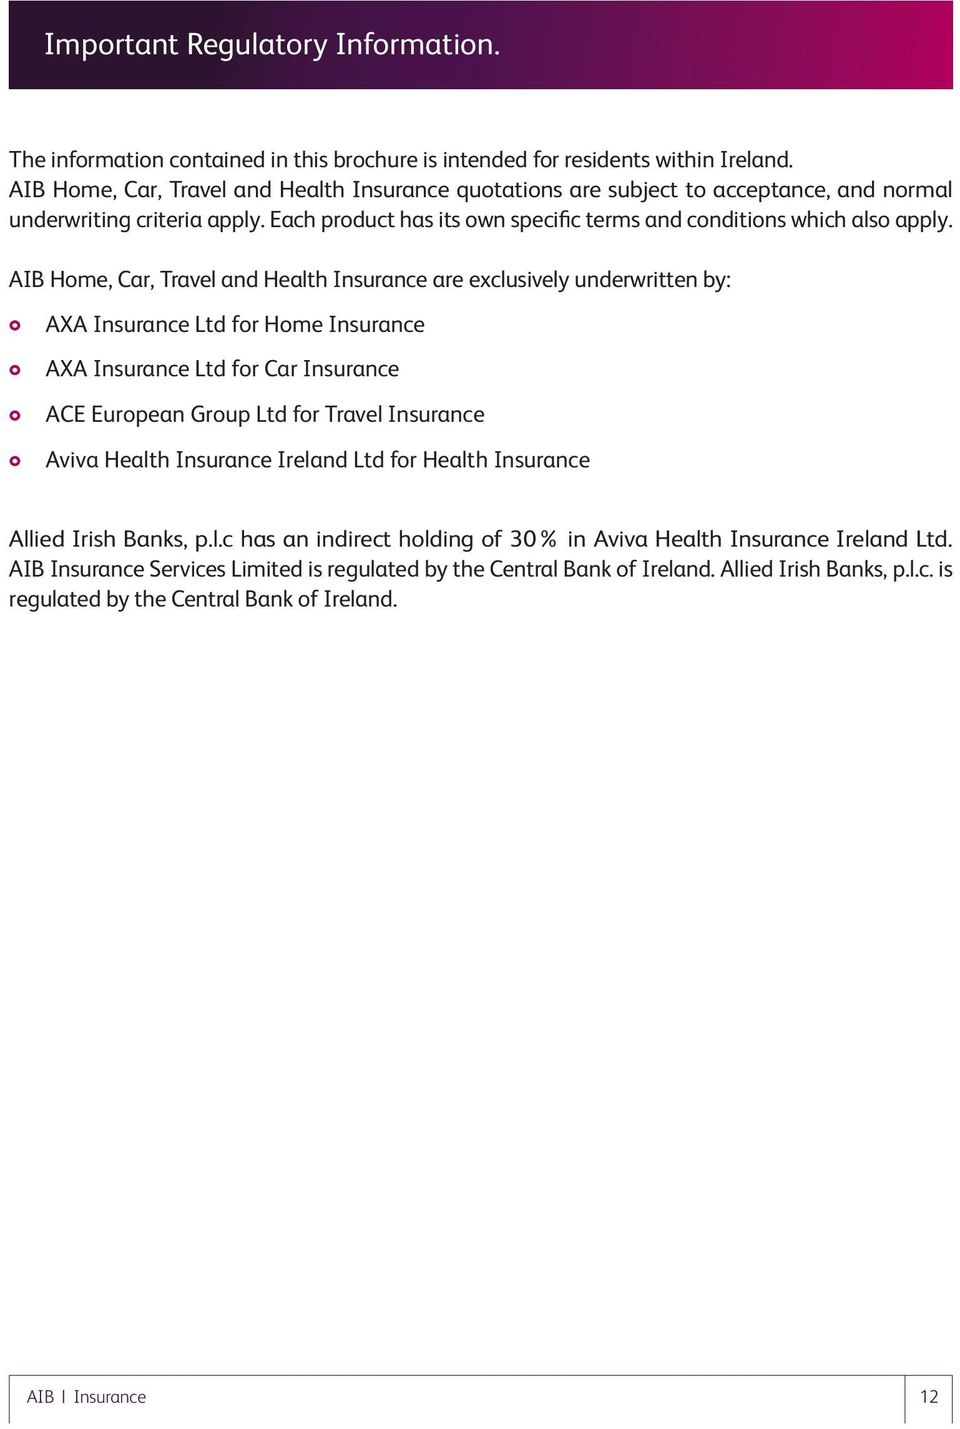 AIB Home, Car, Travel and Health Insurance are exclusively underwritten by: AXA Insurance Ltd for Home Insurance AXA Insurance Ltd for Car Insurance ACE European Group Ltd for Travel Insurance Aviva